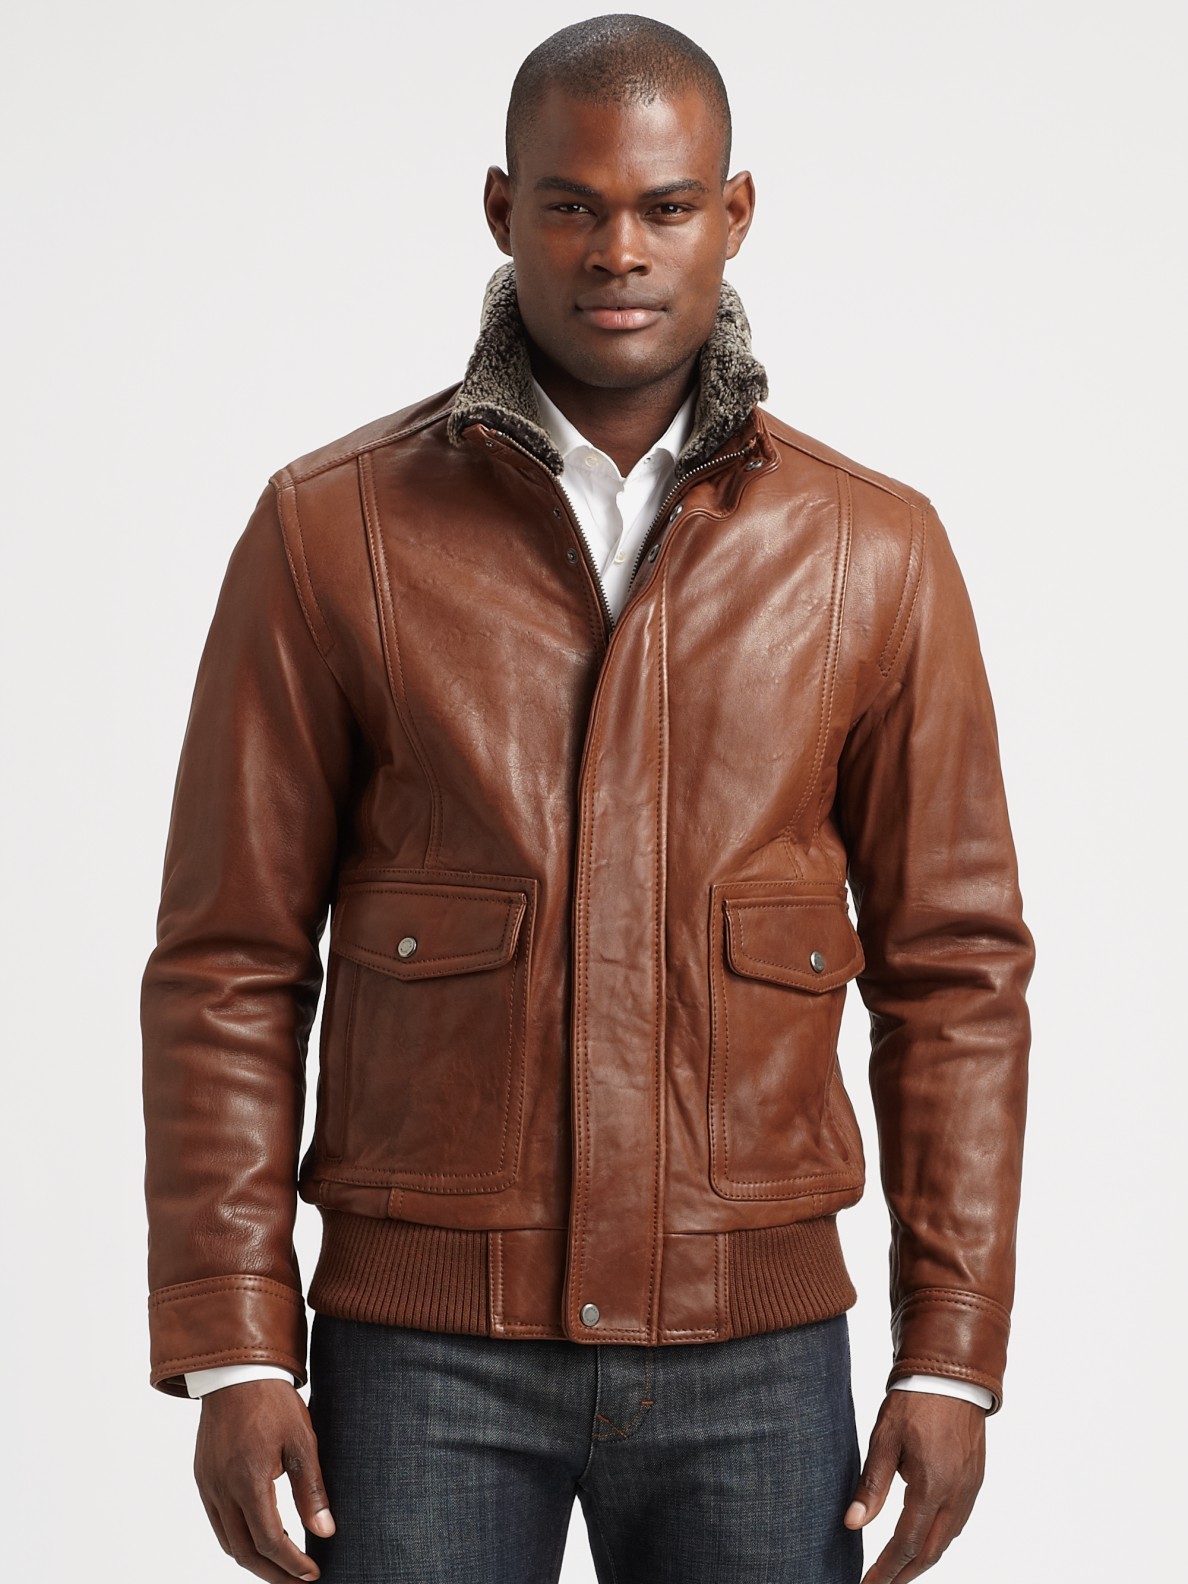 Overstock uses cookies to ensure you get the best experience on our site. If you continue on our site, you consent to the use of such cookies. Learn more. OK Jackets. Clothing & Shoes / Men's Mason & Cooper Men's Red Leather Bomber Jacket. 15 Reviews. SALE. Quick View. Sale $